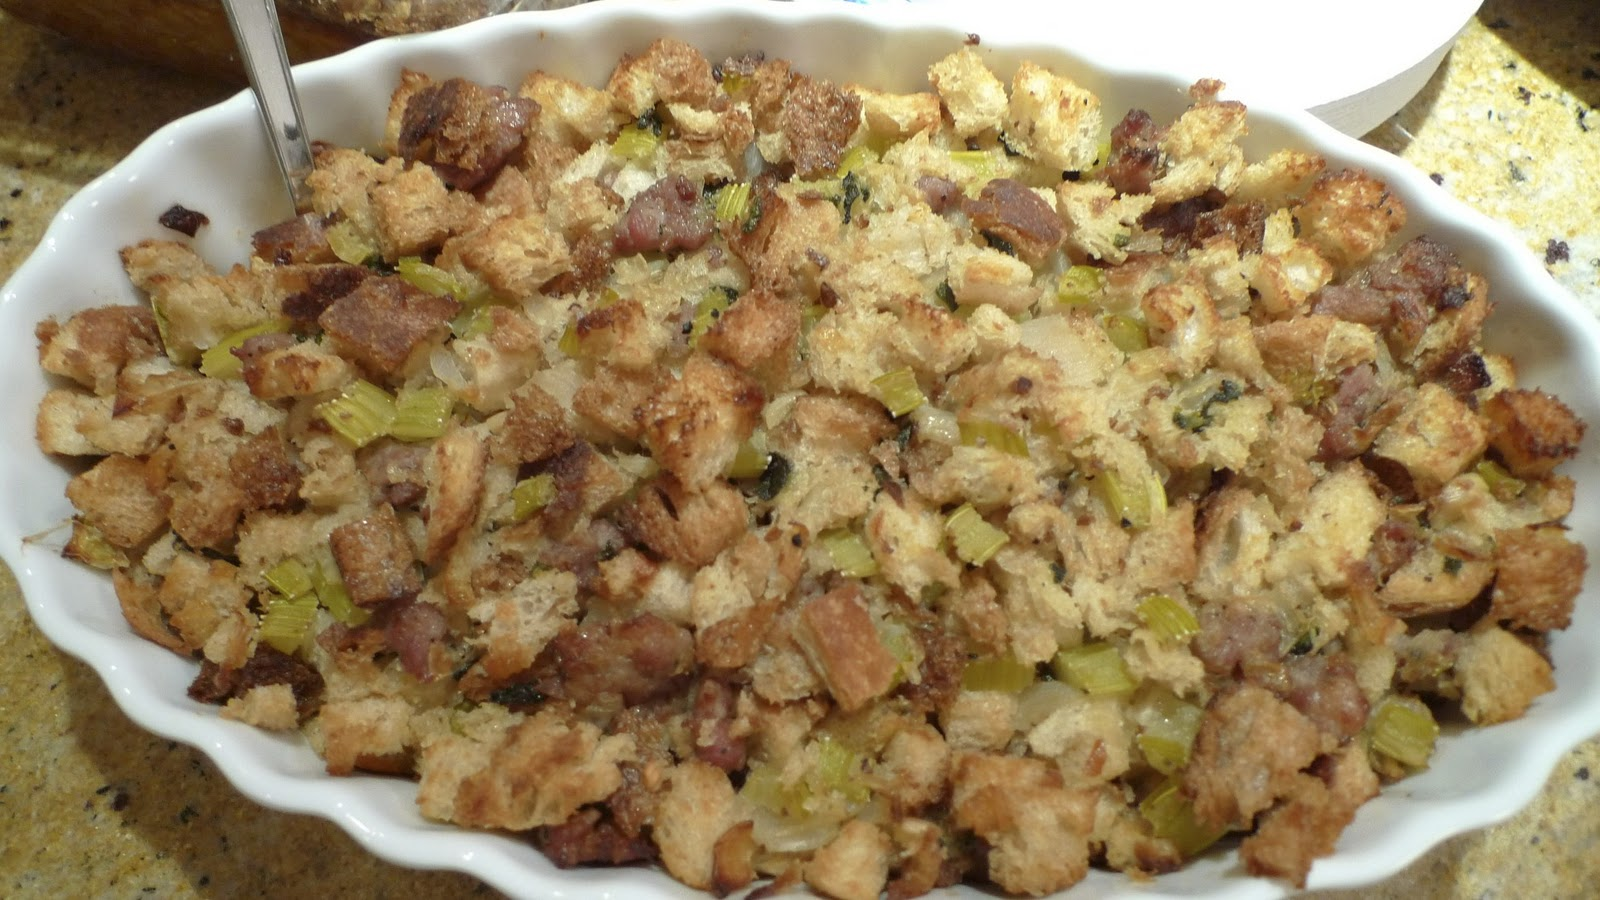 What's Cooking at Soomeenshee's: Italian Sausage Stuffing